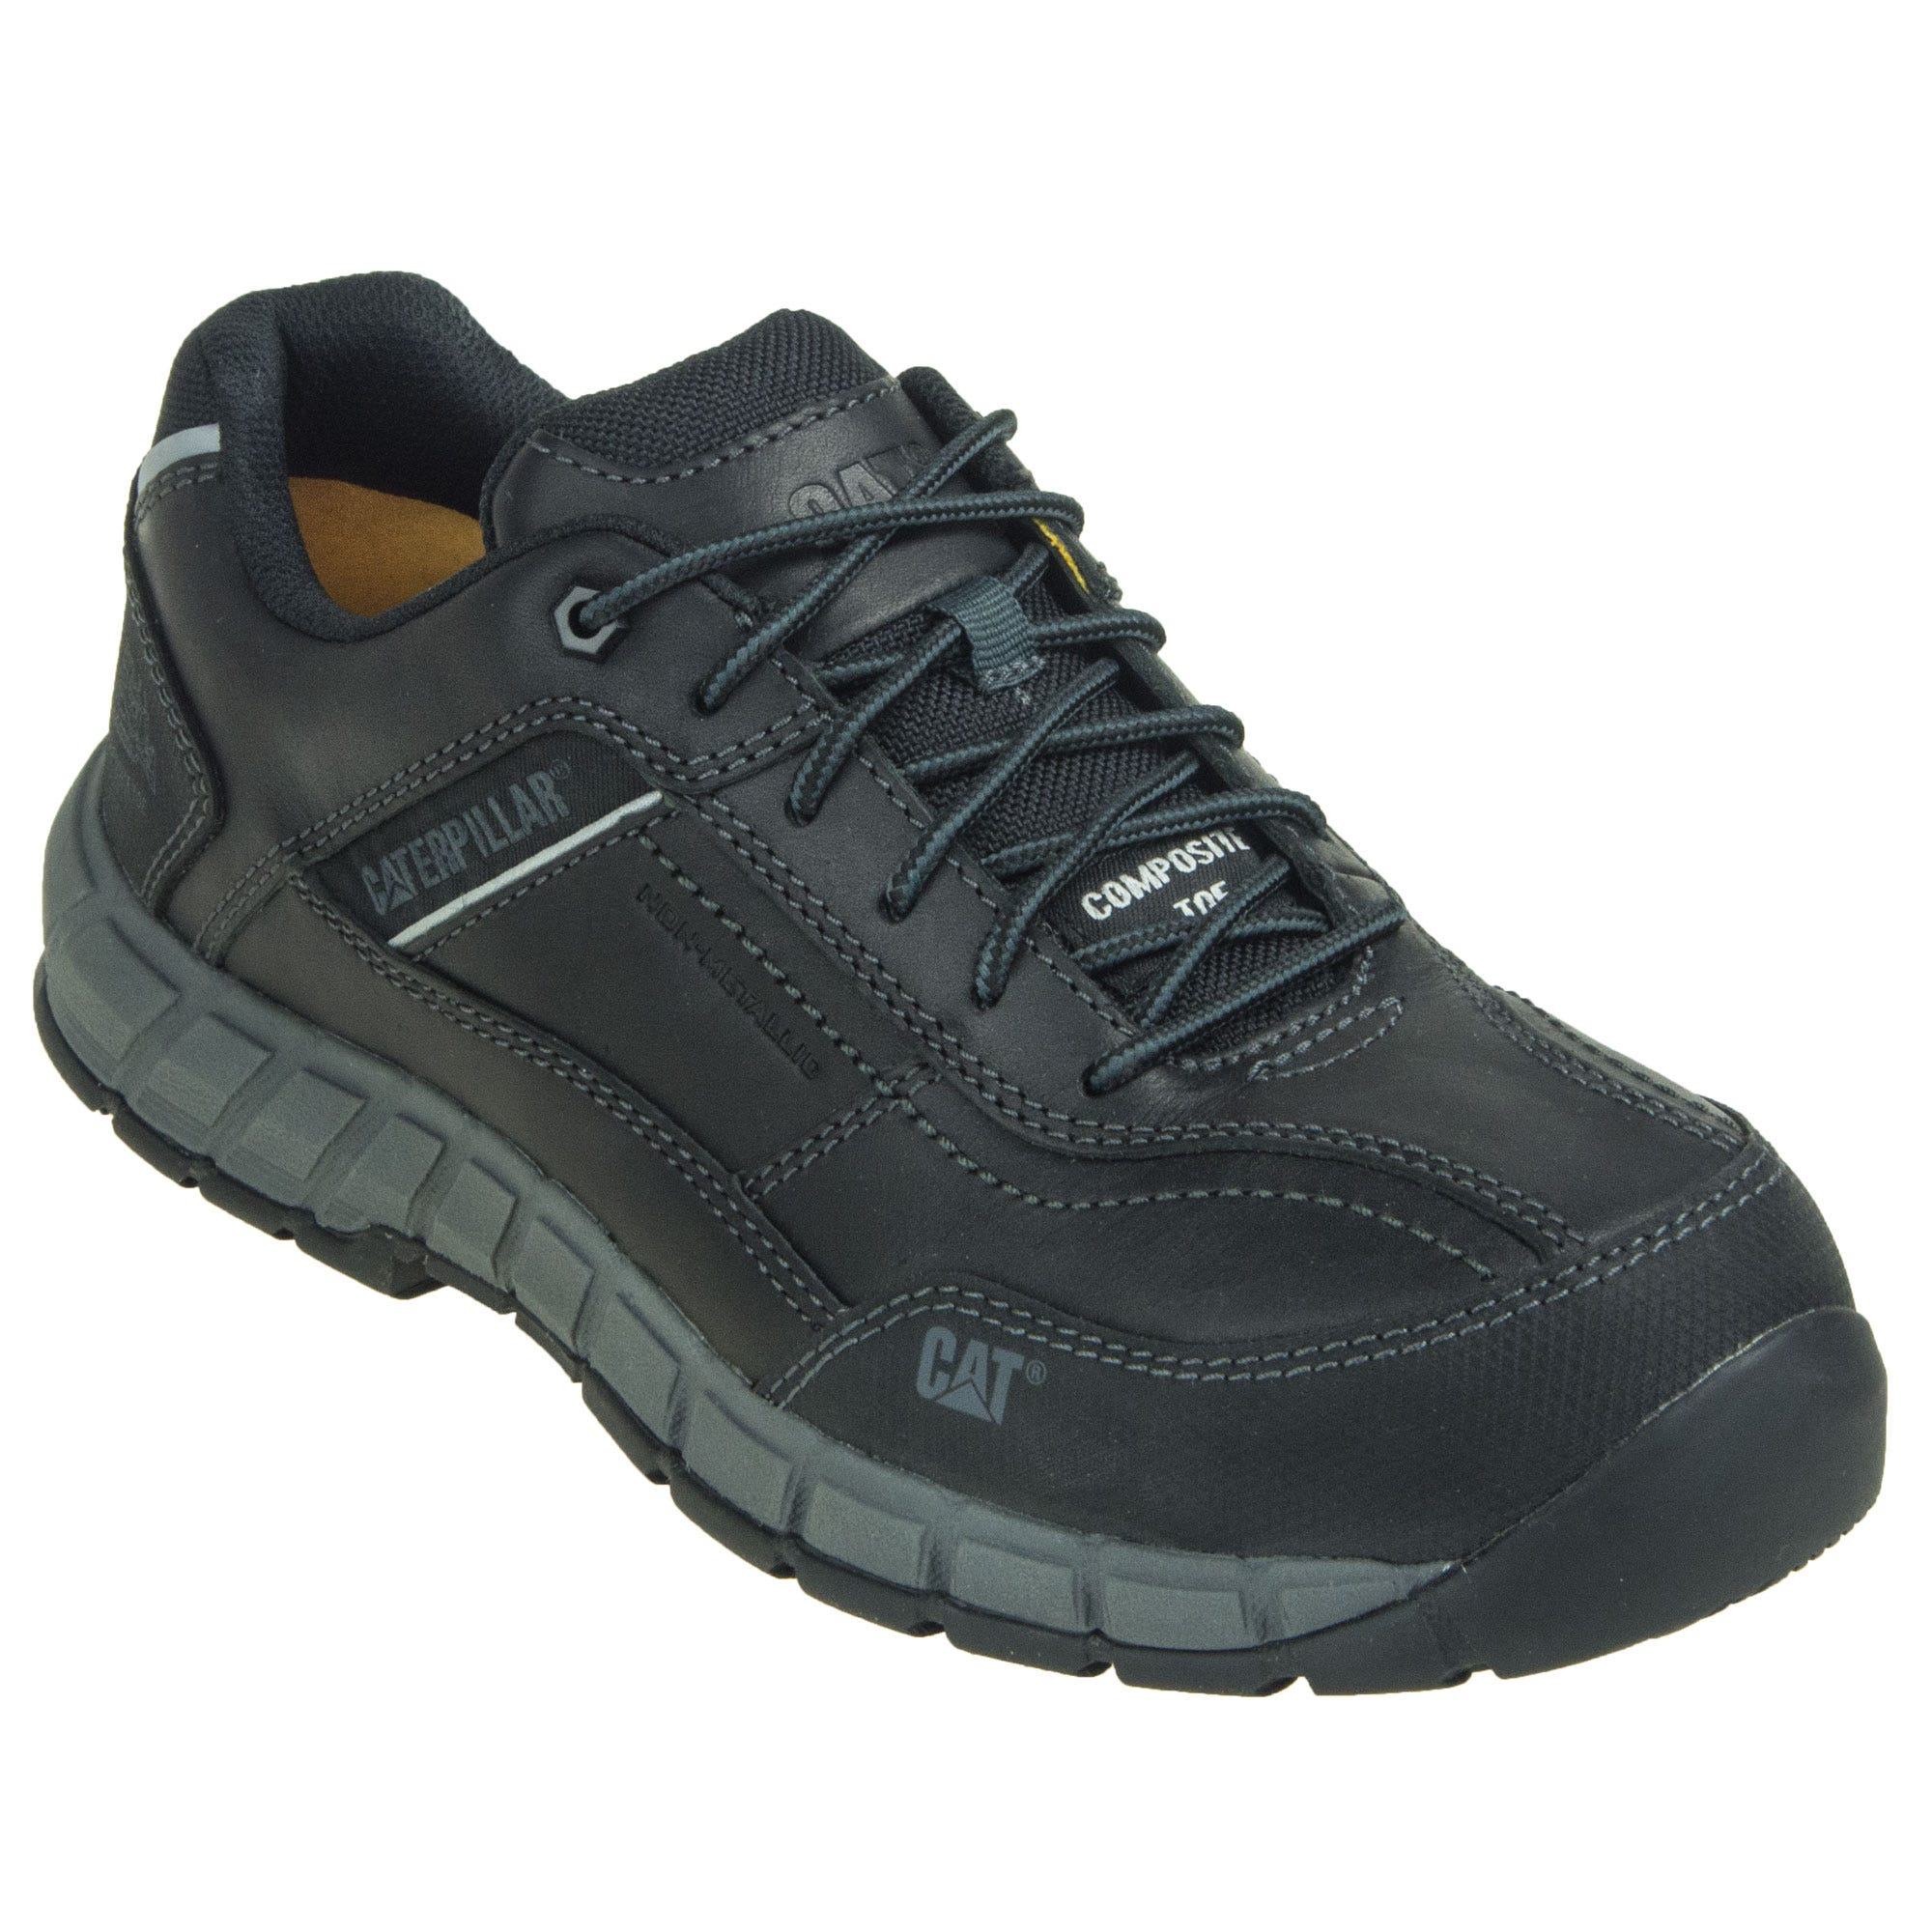 Caterpillar Streamline 90839 Composite Toe Work Shoes